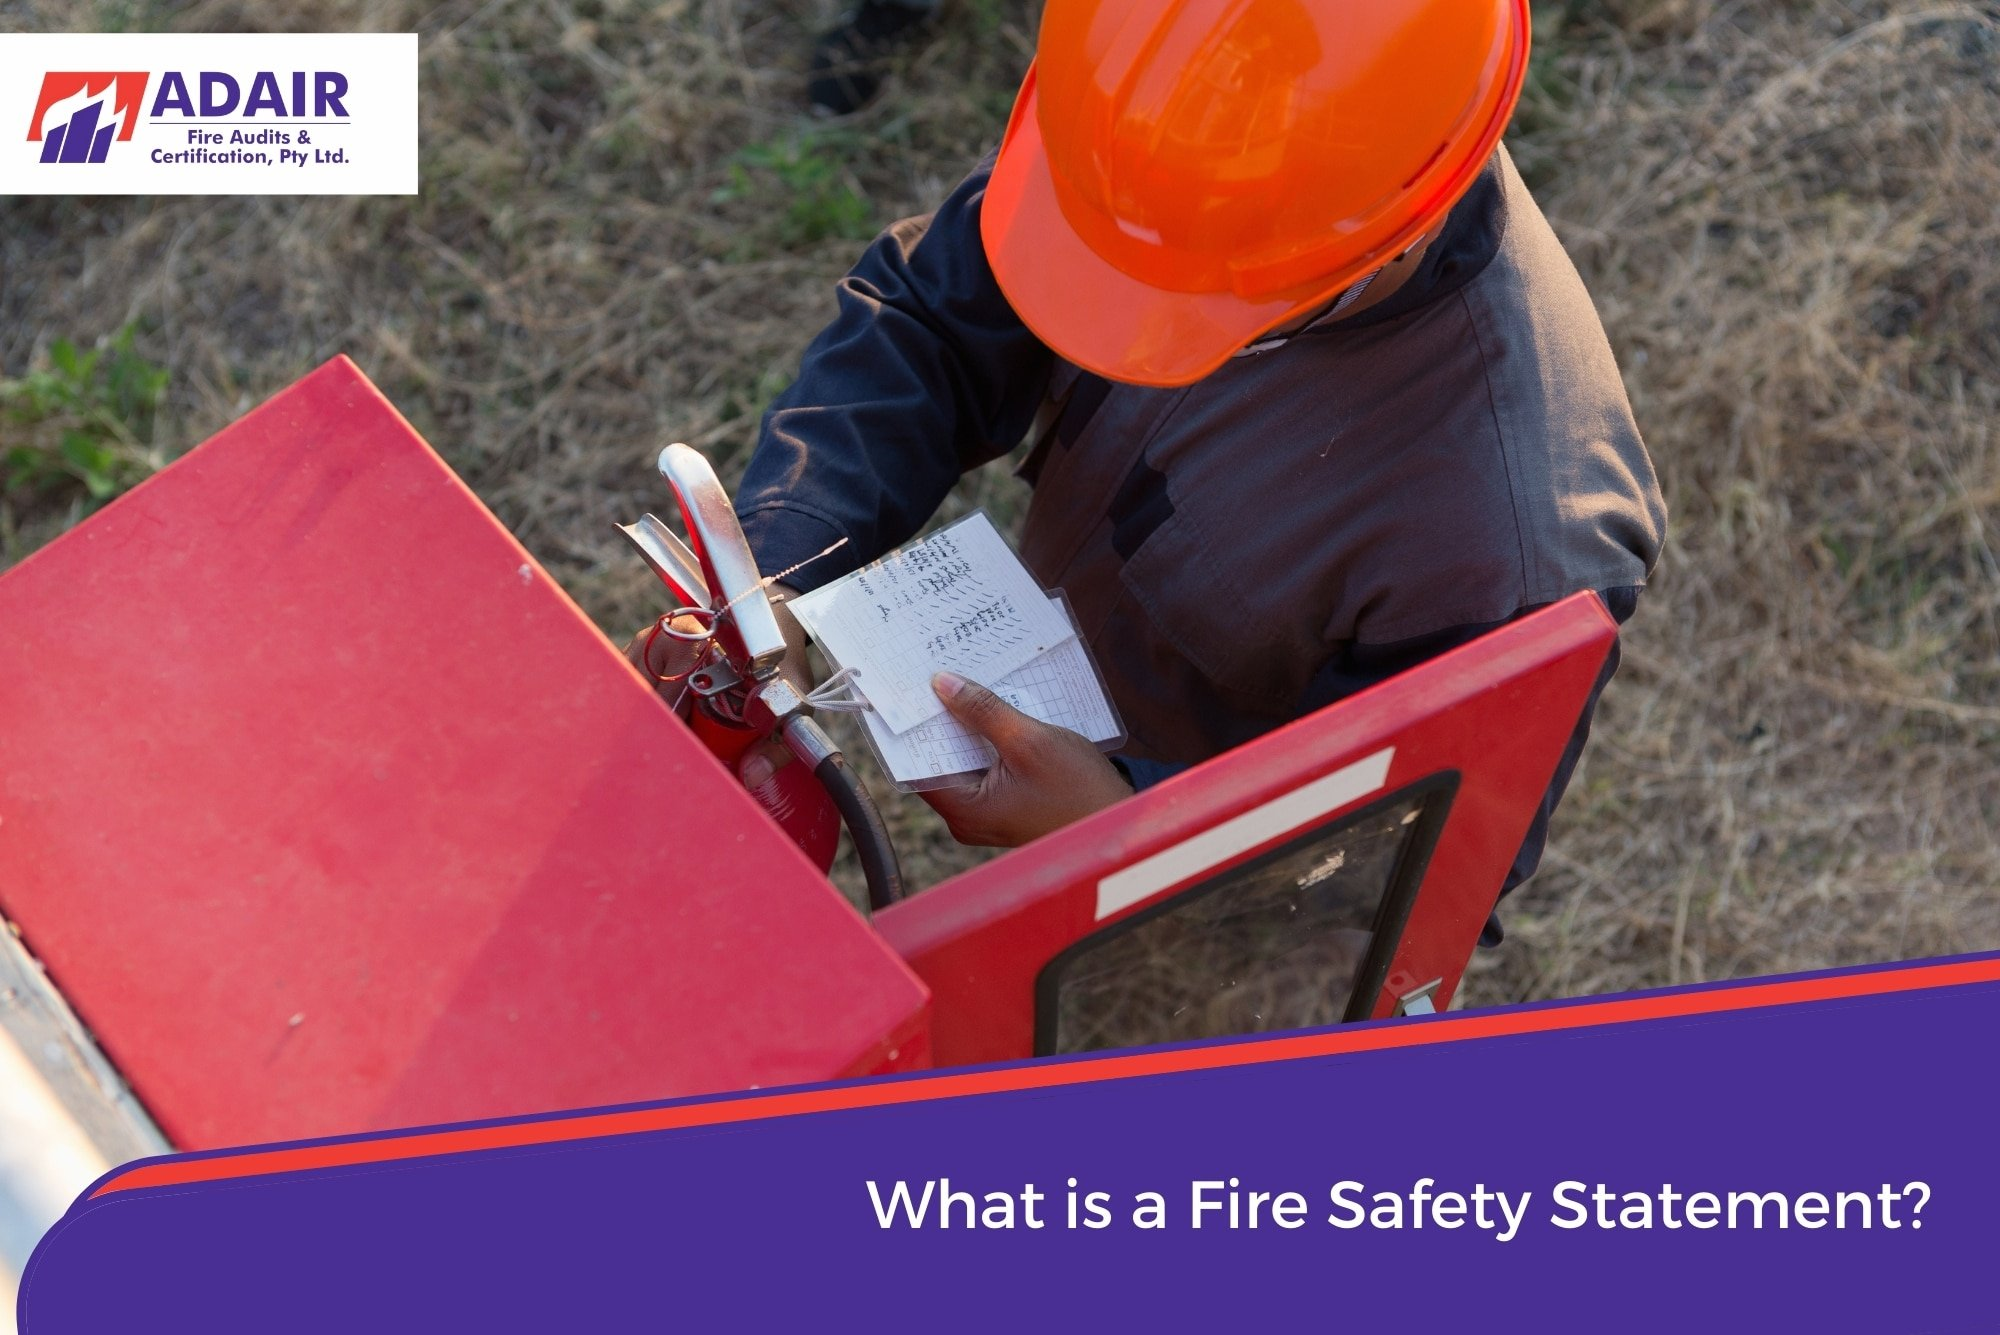 What is a Fire Safety Statement